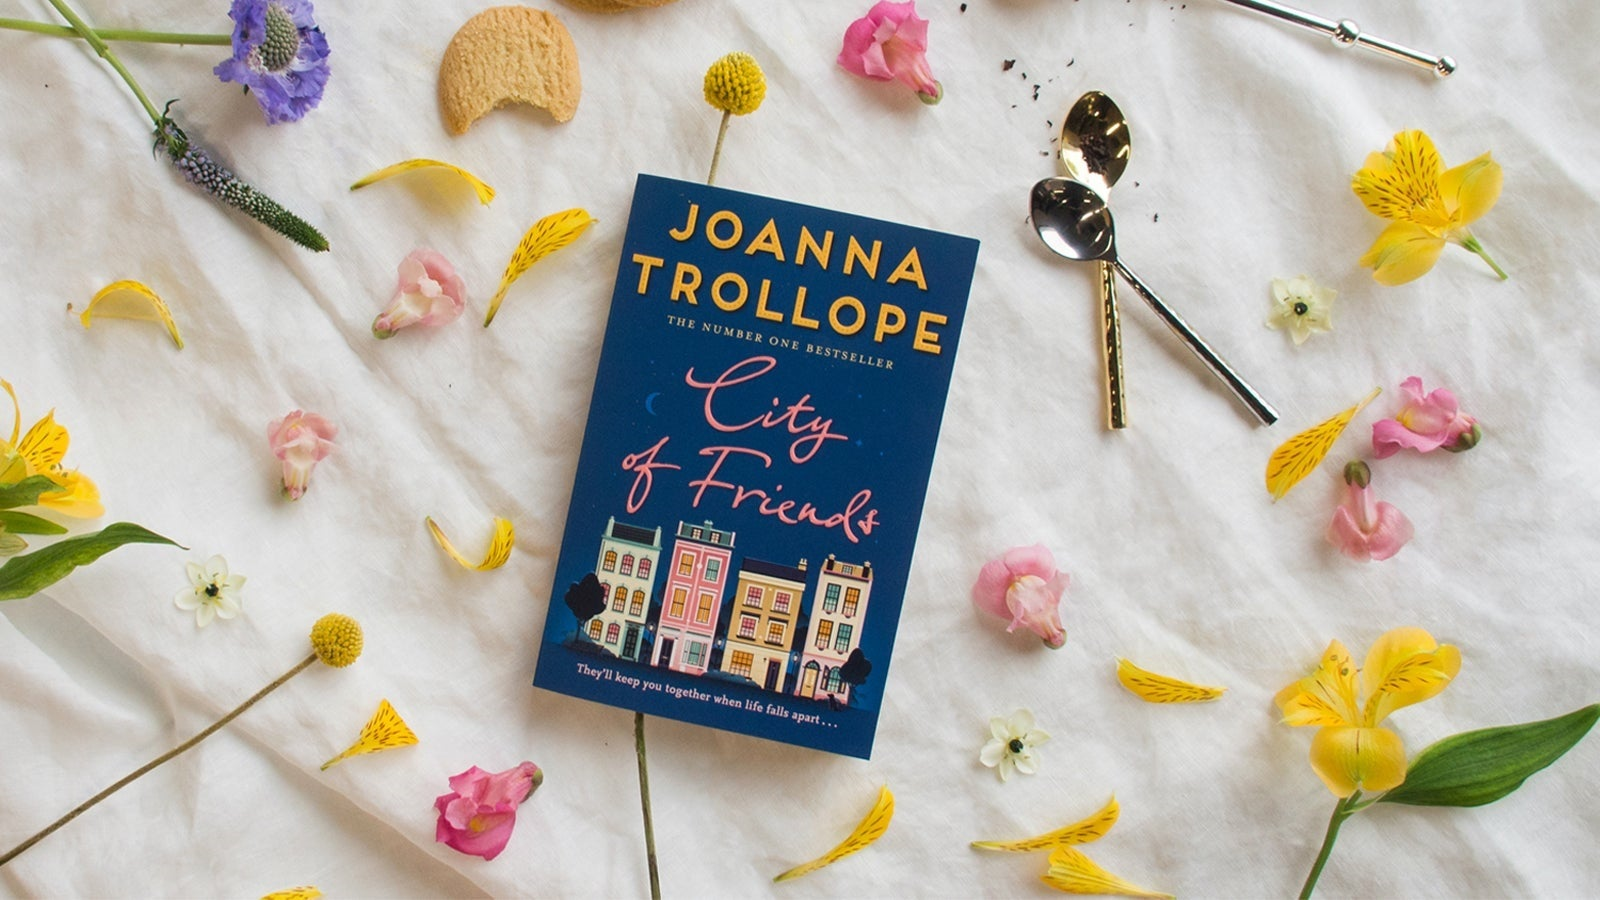 City of Friends book pictured surrounded by flowers